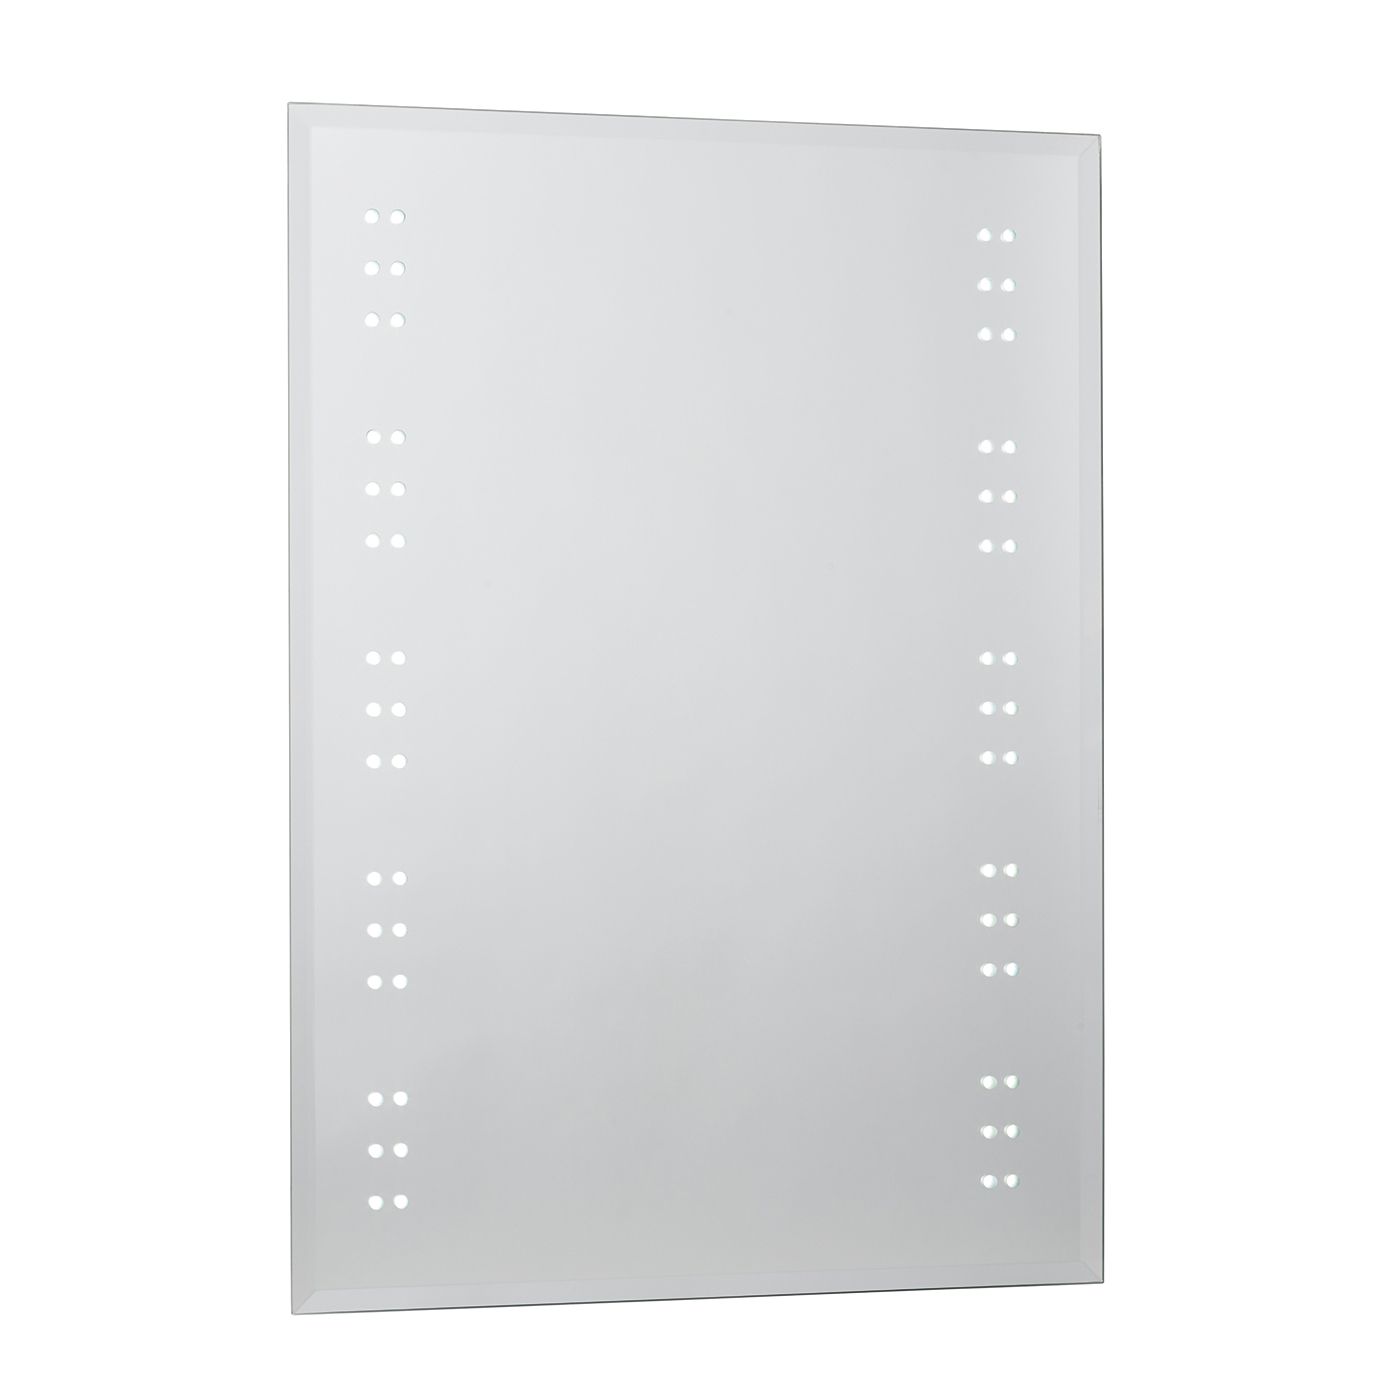 Endon Kastos LED bathroom mirror IP44 3W demister sensor H: 700mm W: 500mm Thumbnail 1